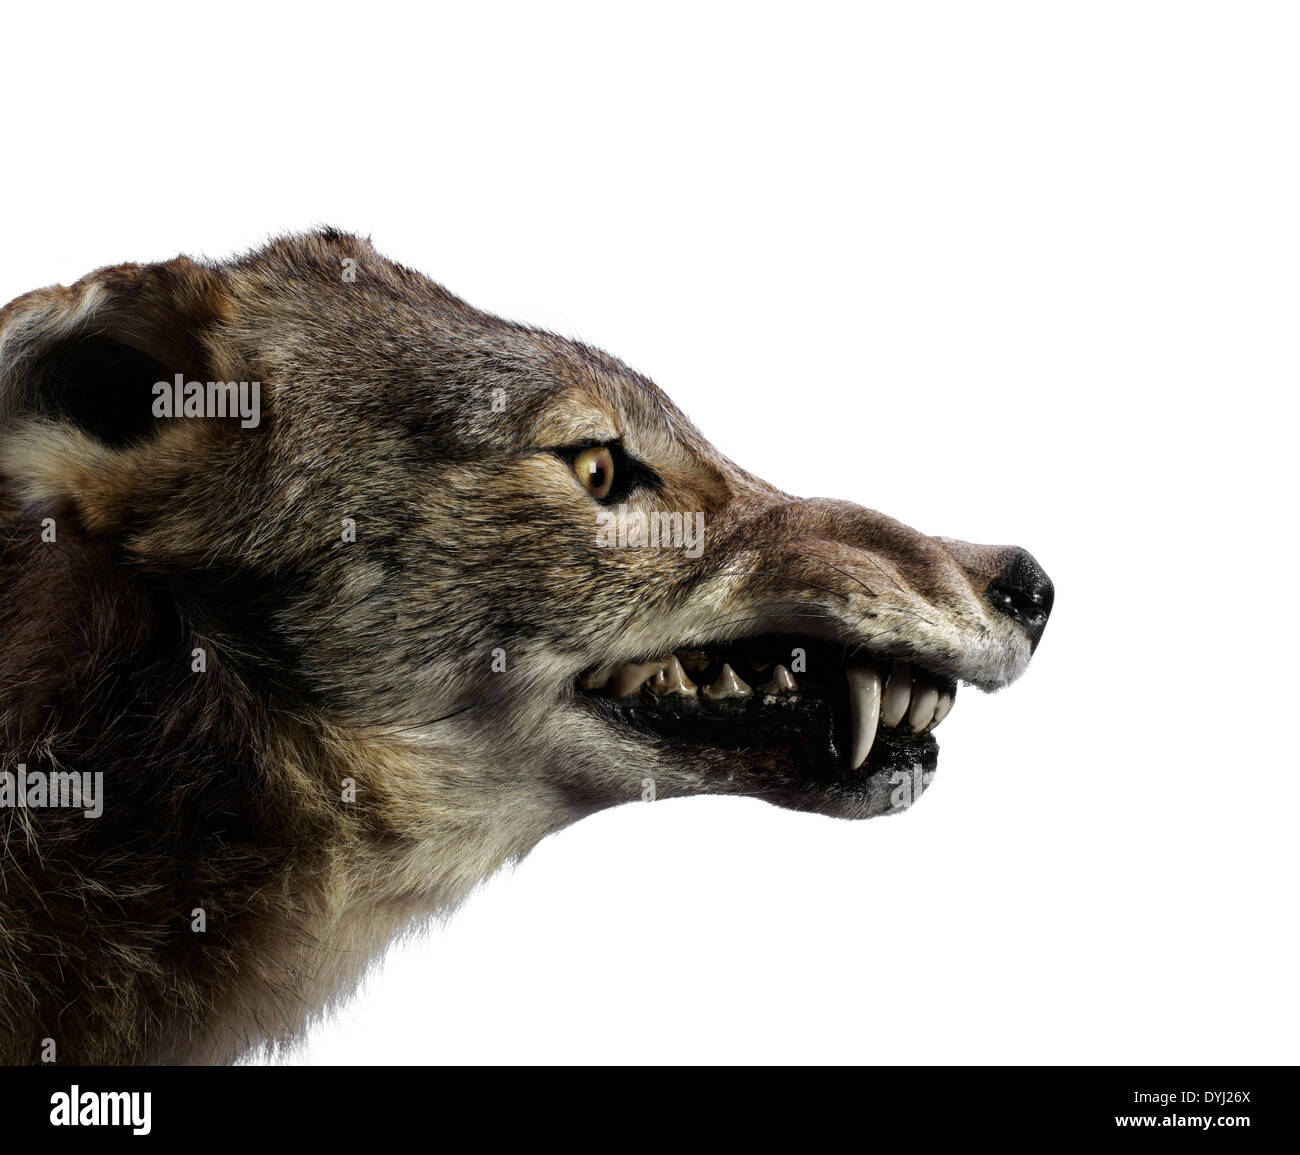 Portrait d'un Loup grogne Photo Stock